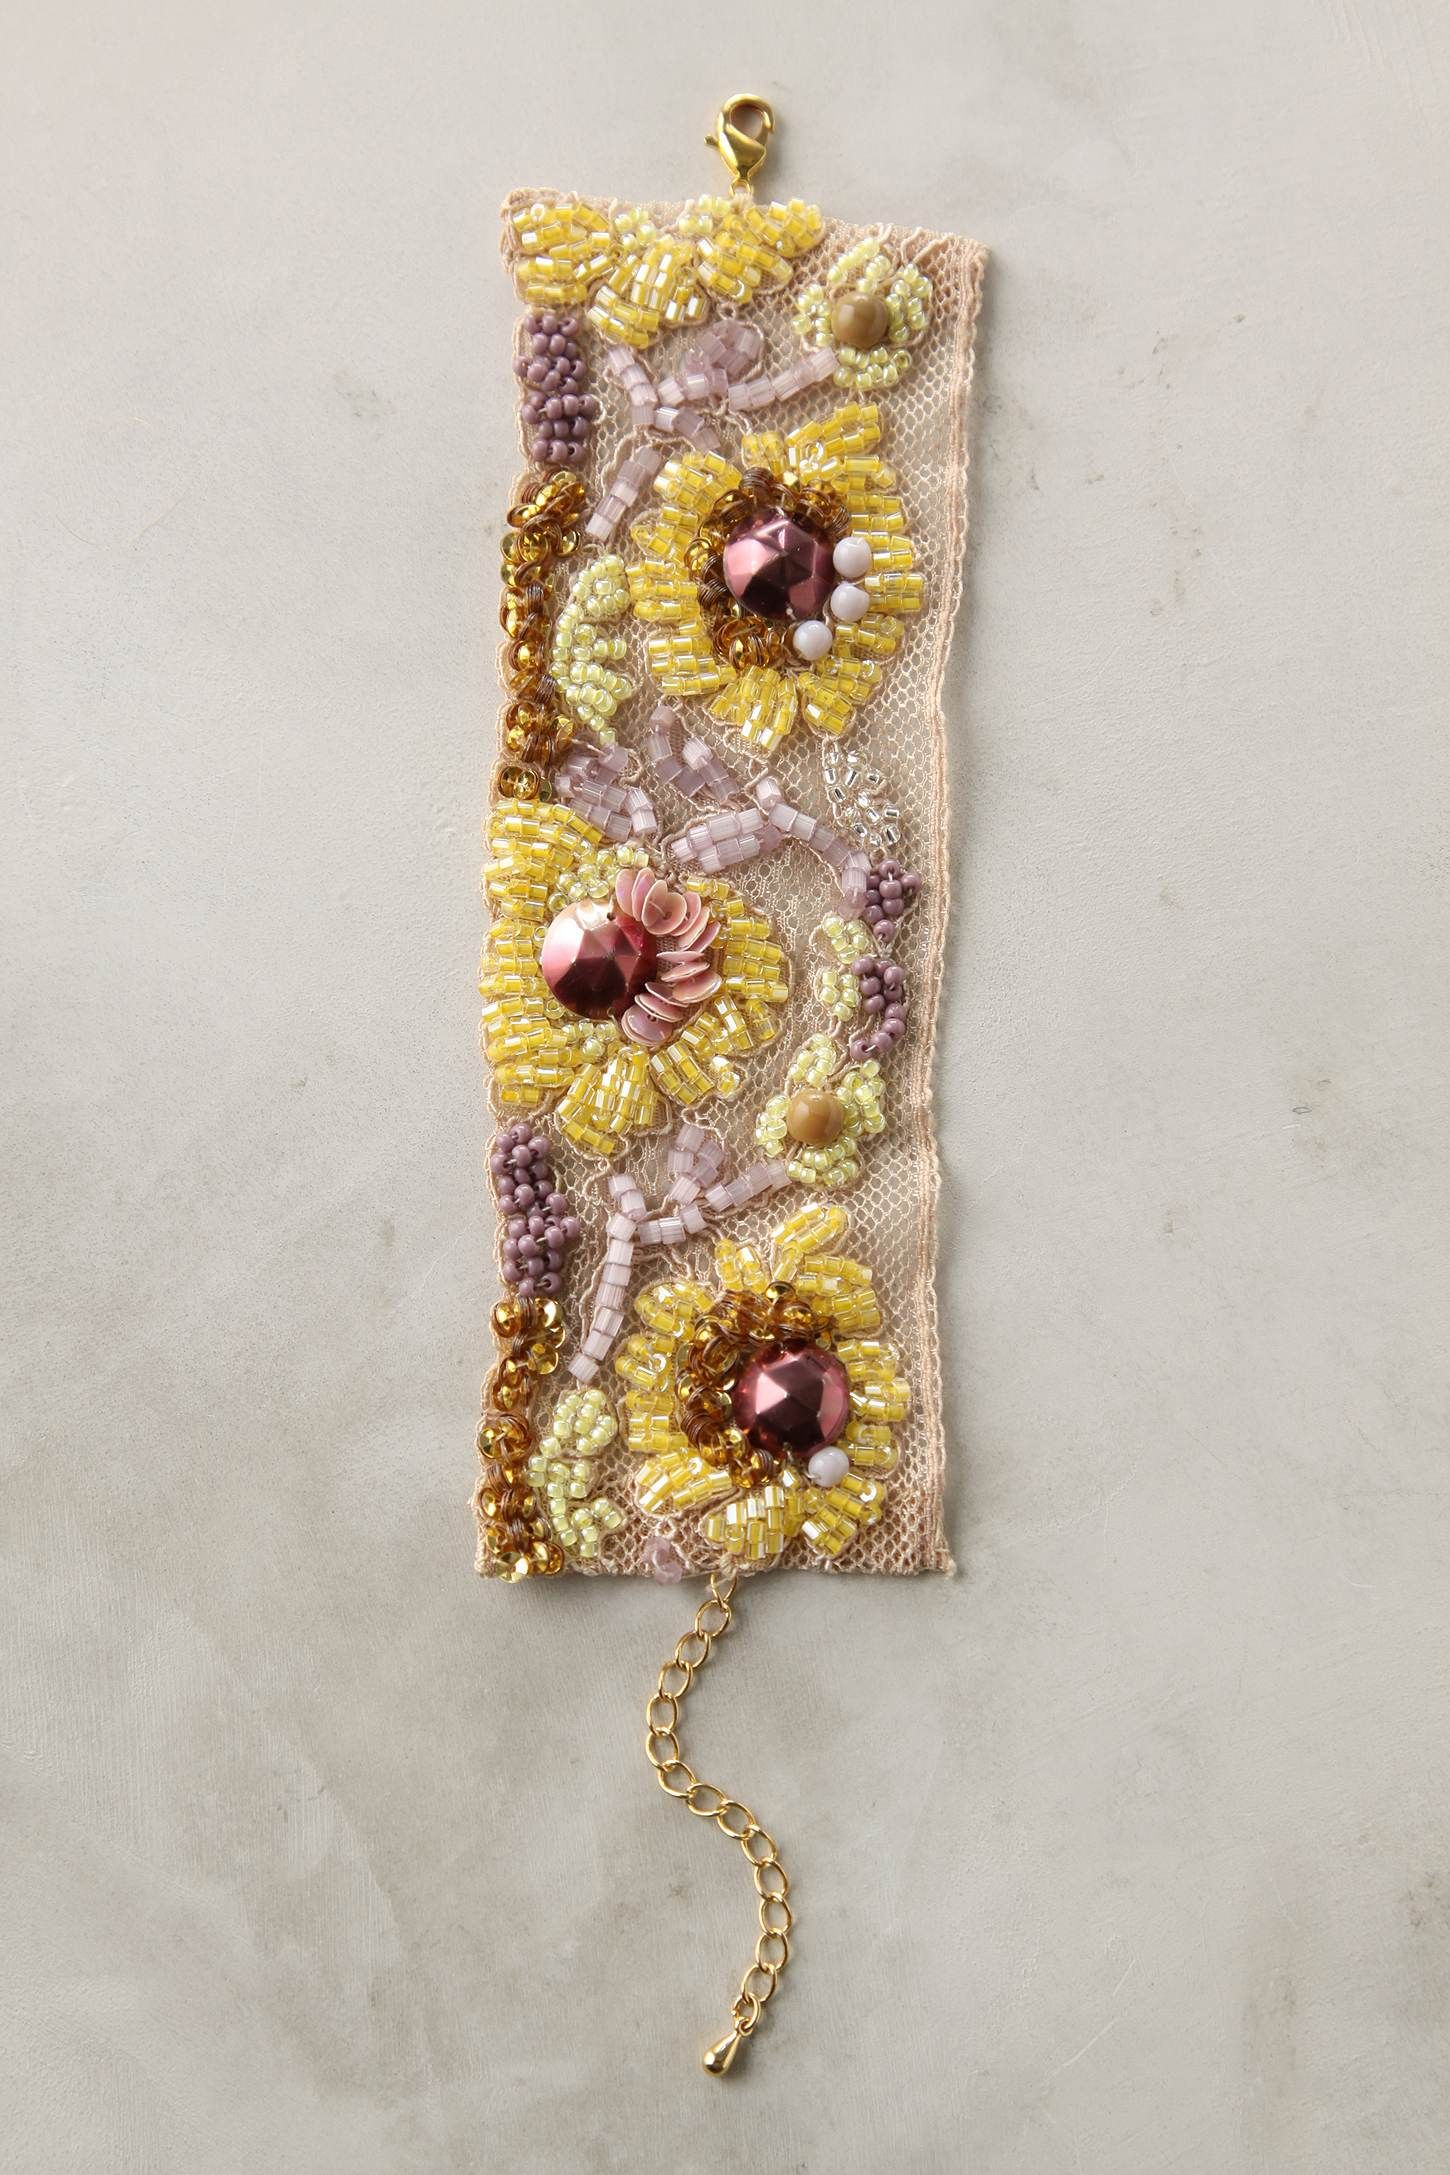 Handmade Pomponette bracelet with faceted gems, sequins, and beads atop vintage lace #jewelry